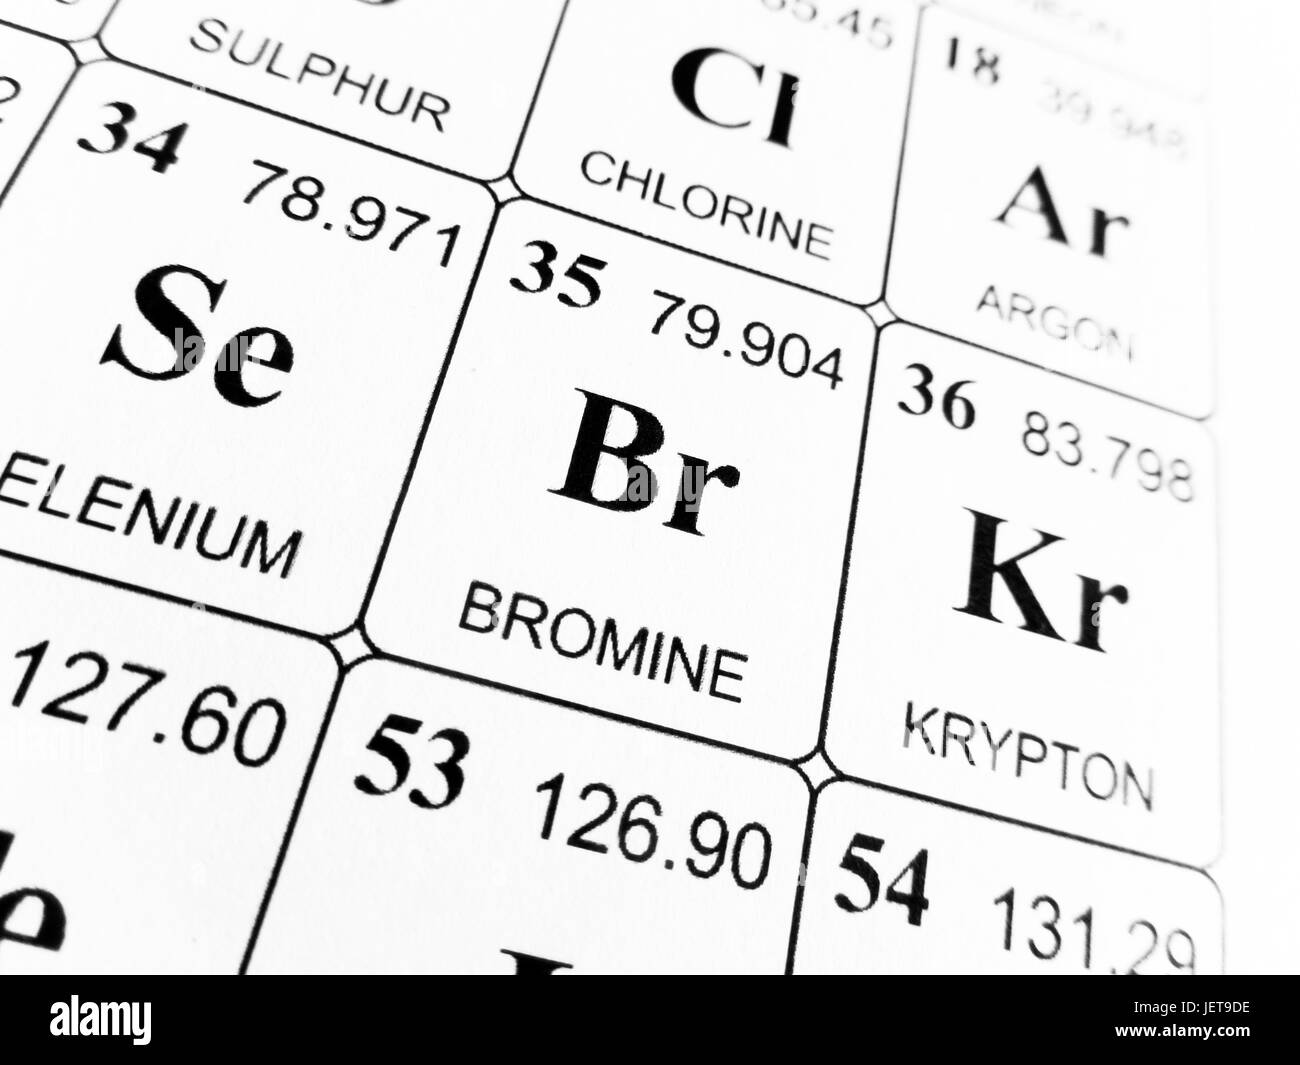 Bromine Stock Photos Bromine Stock Images Alamy